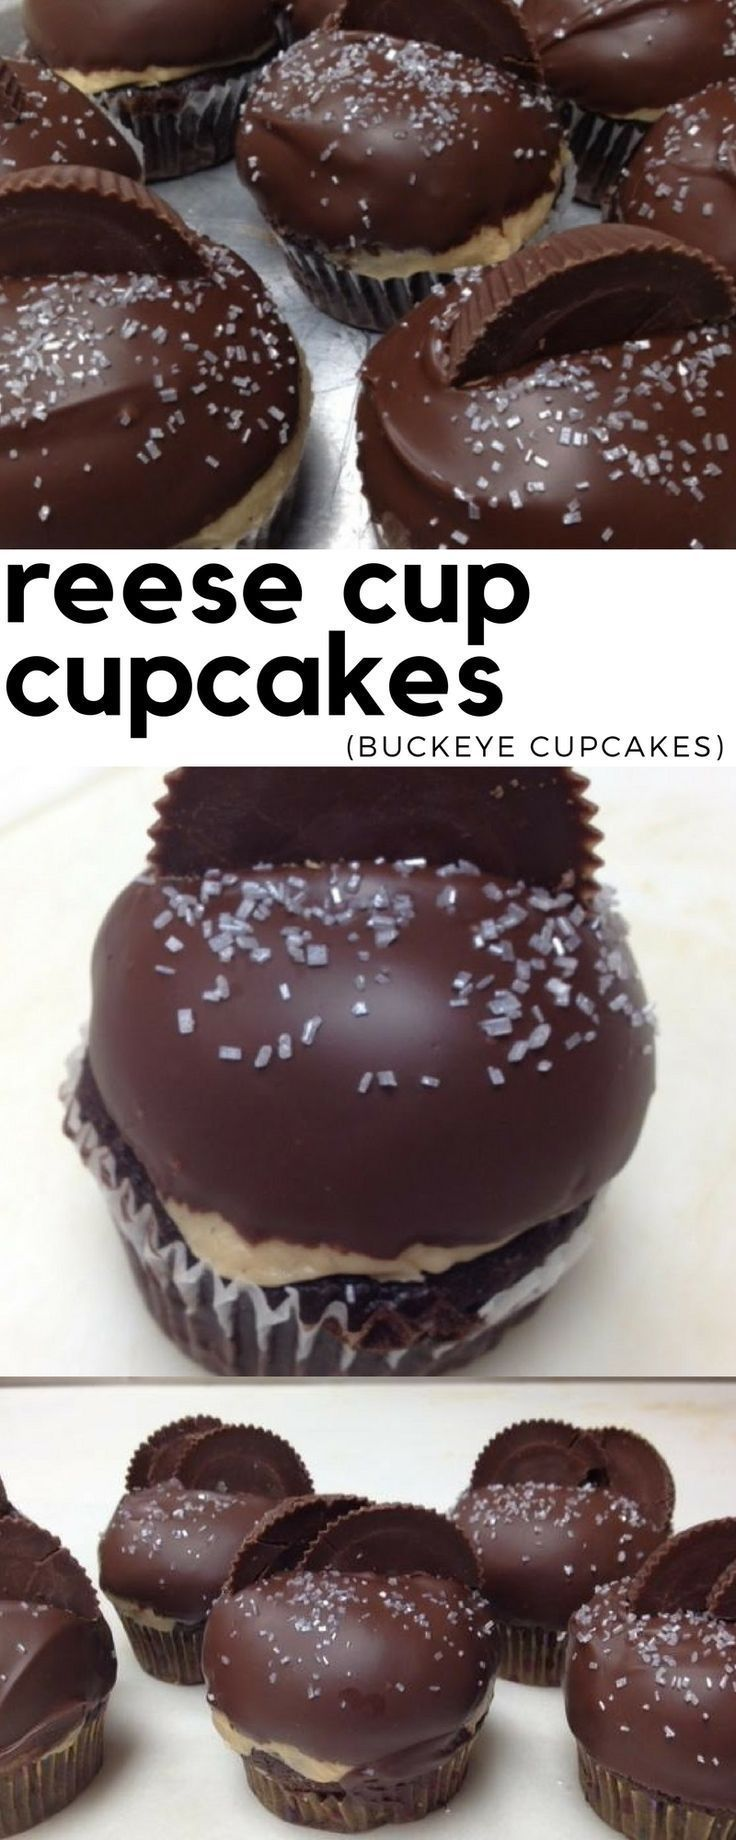 Homemade reese cup cupcakes recipe any peanut butter fan is sure to love! #cupcakerecipes